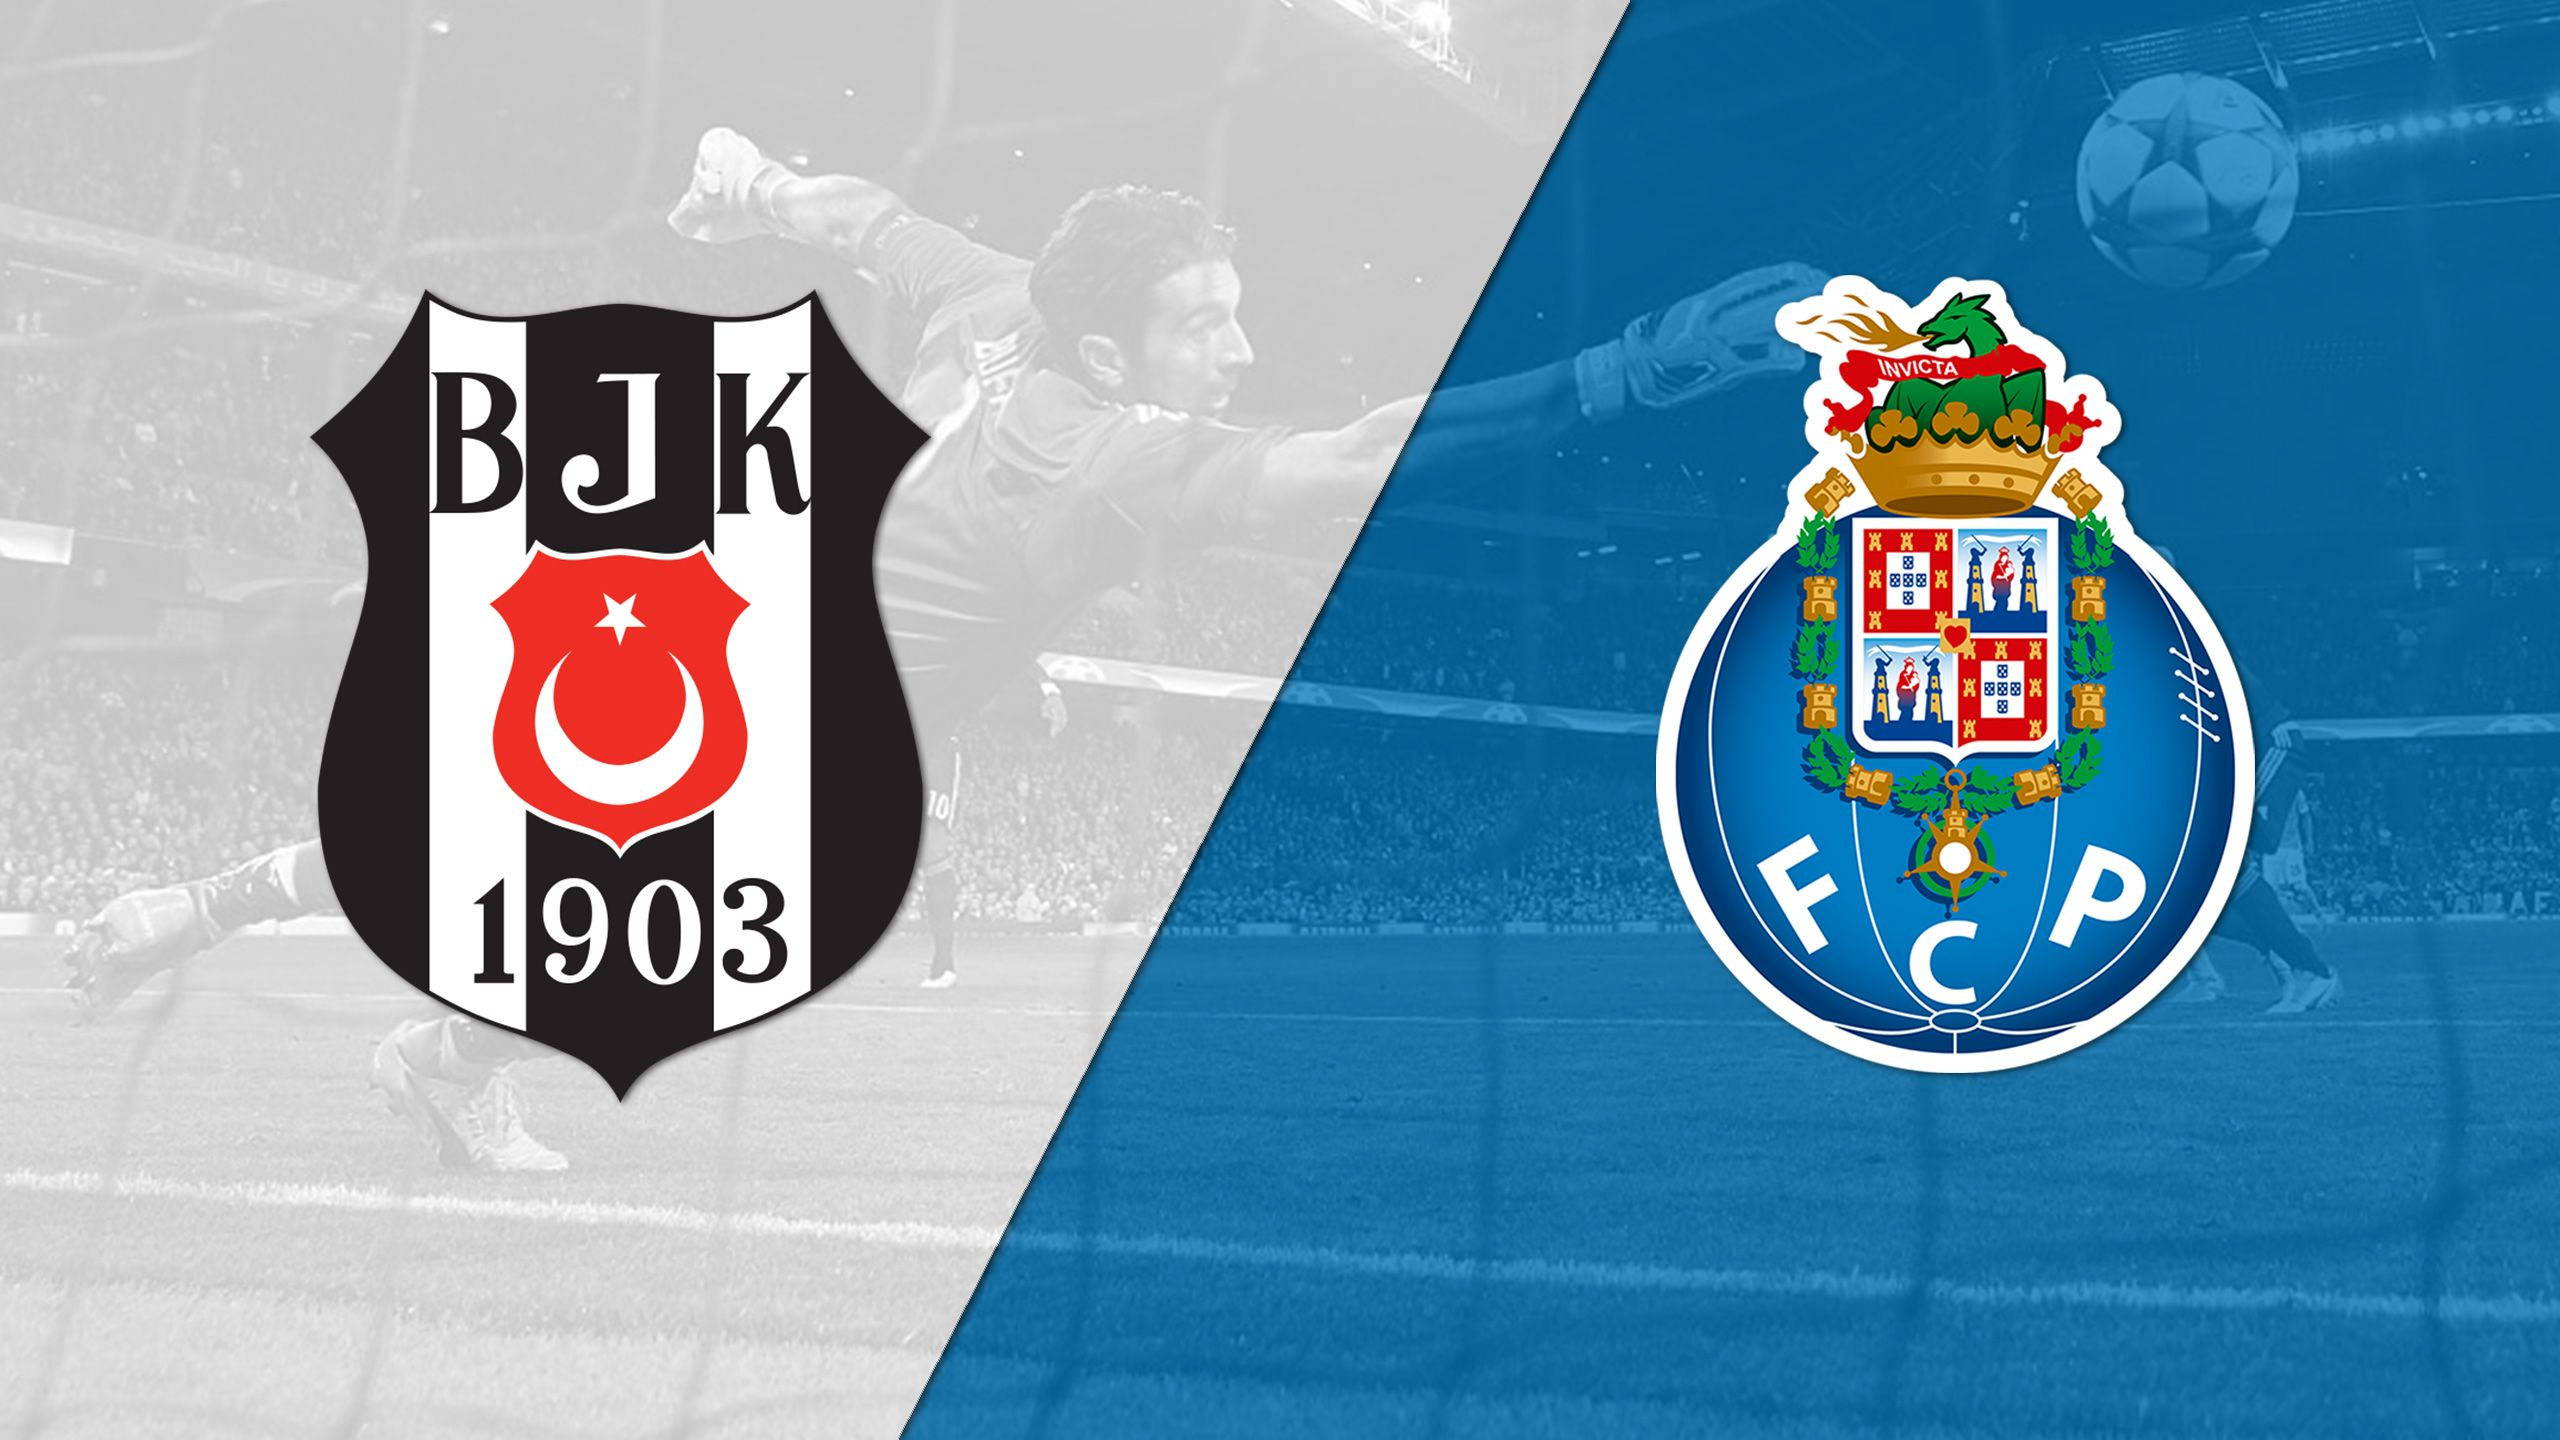 In Spanish - Besiktas JK vs. FC Porto (Group Stage #5) (UEFA Champions League)